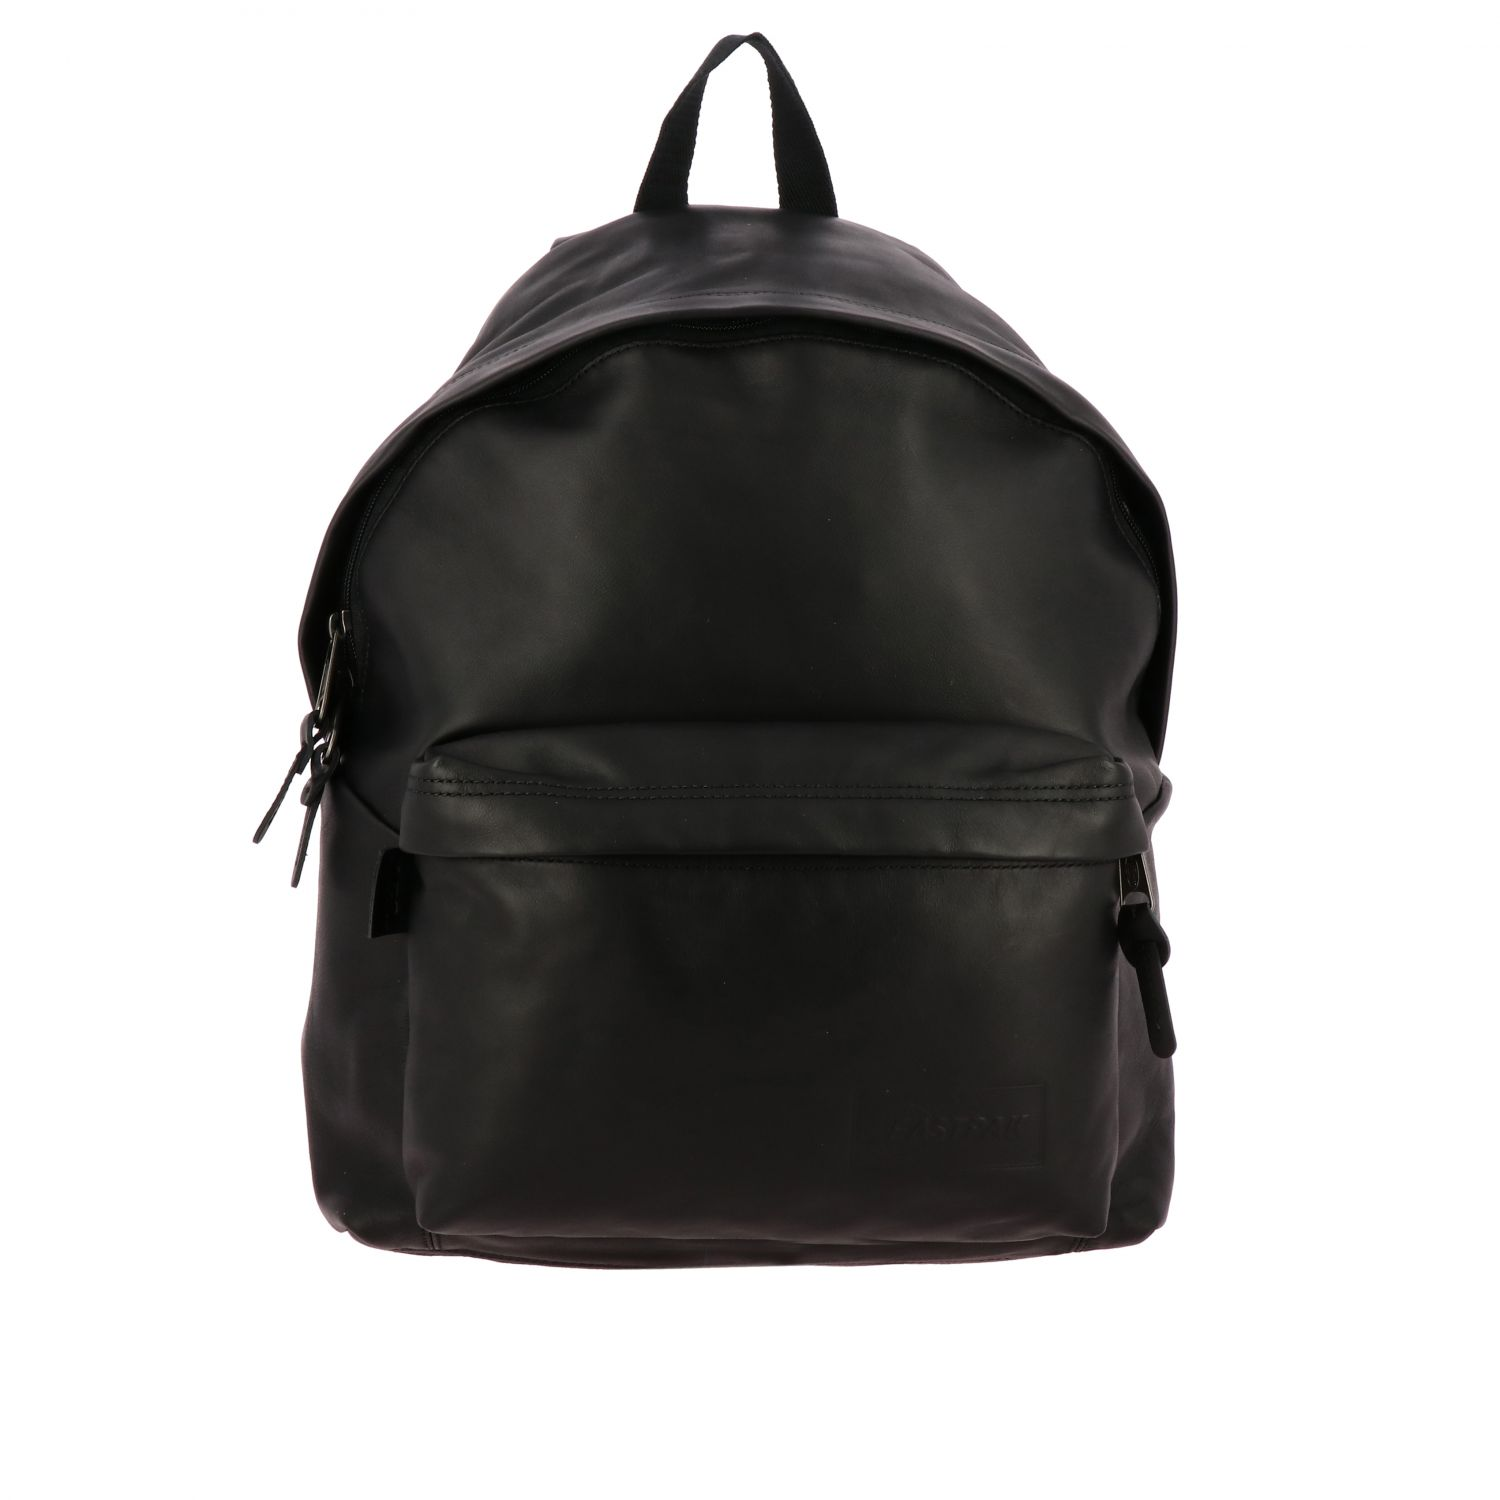 Backpack Eastpak: Shoulder bag women Eastpak black 1